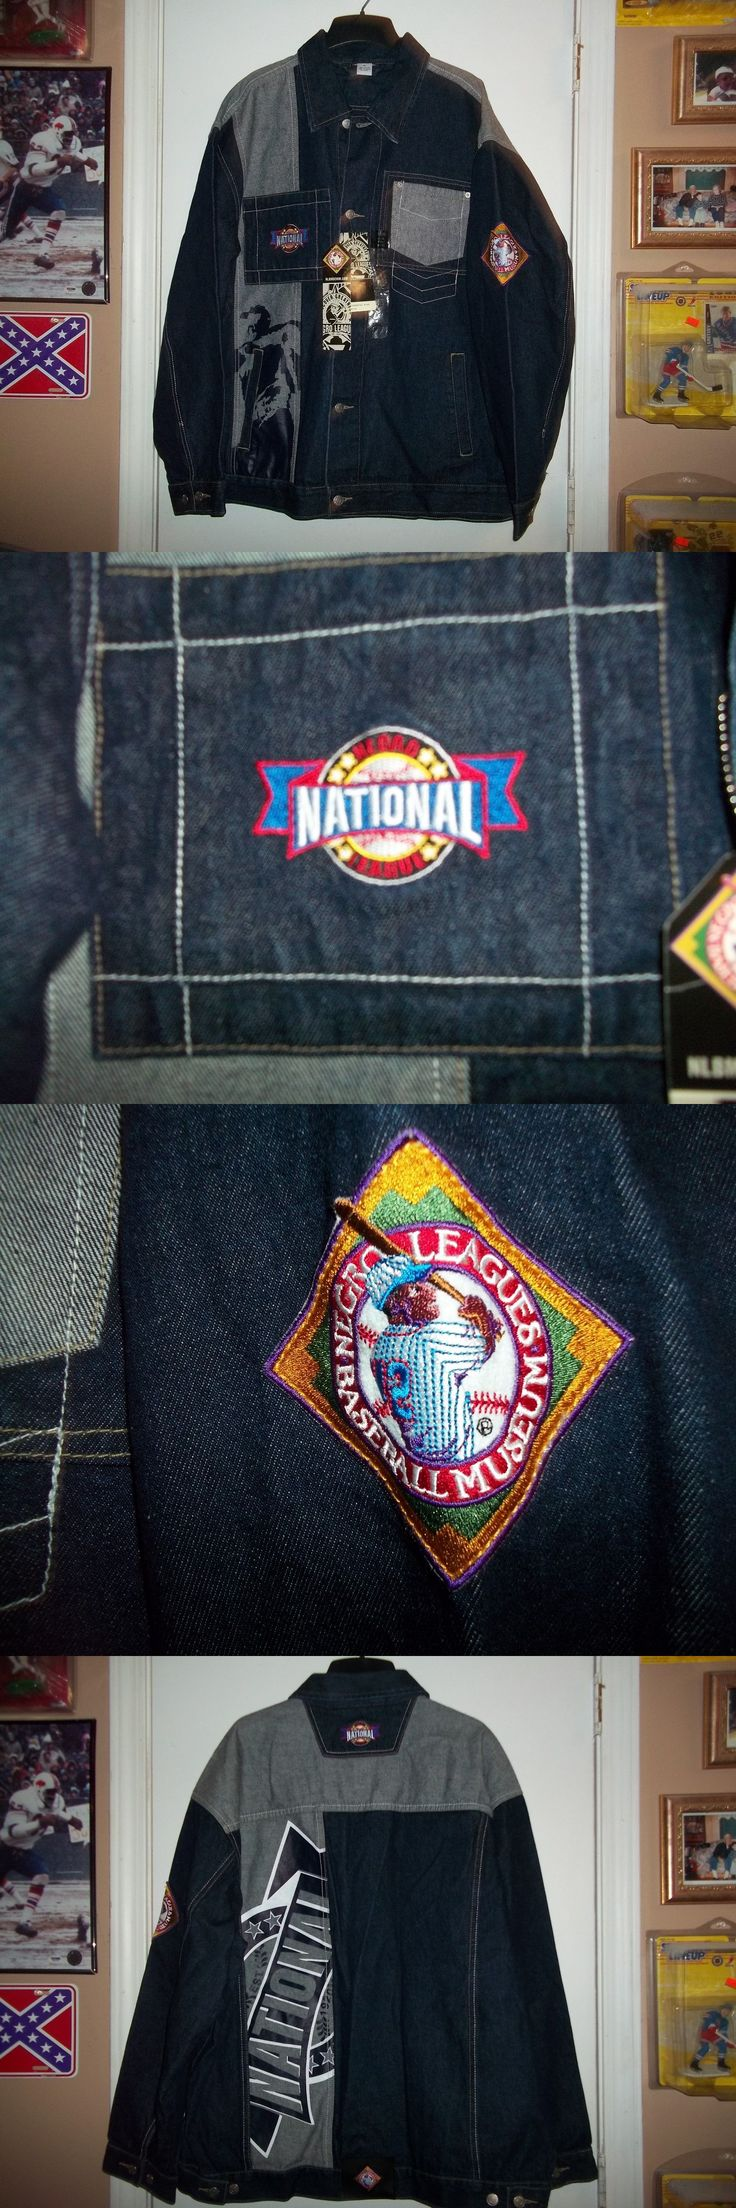 Baseball-Negro Leagues 78129: Nwt - Mlb - Negro National Baseball League - Nlbm - Black Denim Jacket - Xl -> BUY IT NOW ONLY: $85.49 on eBay!